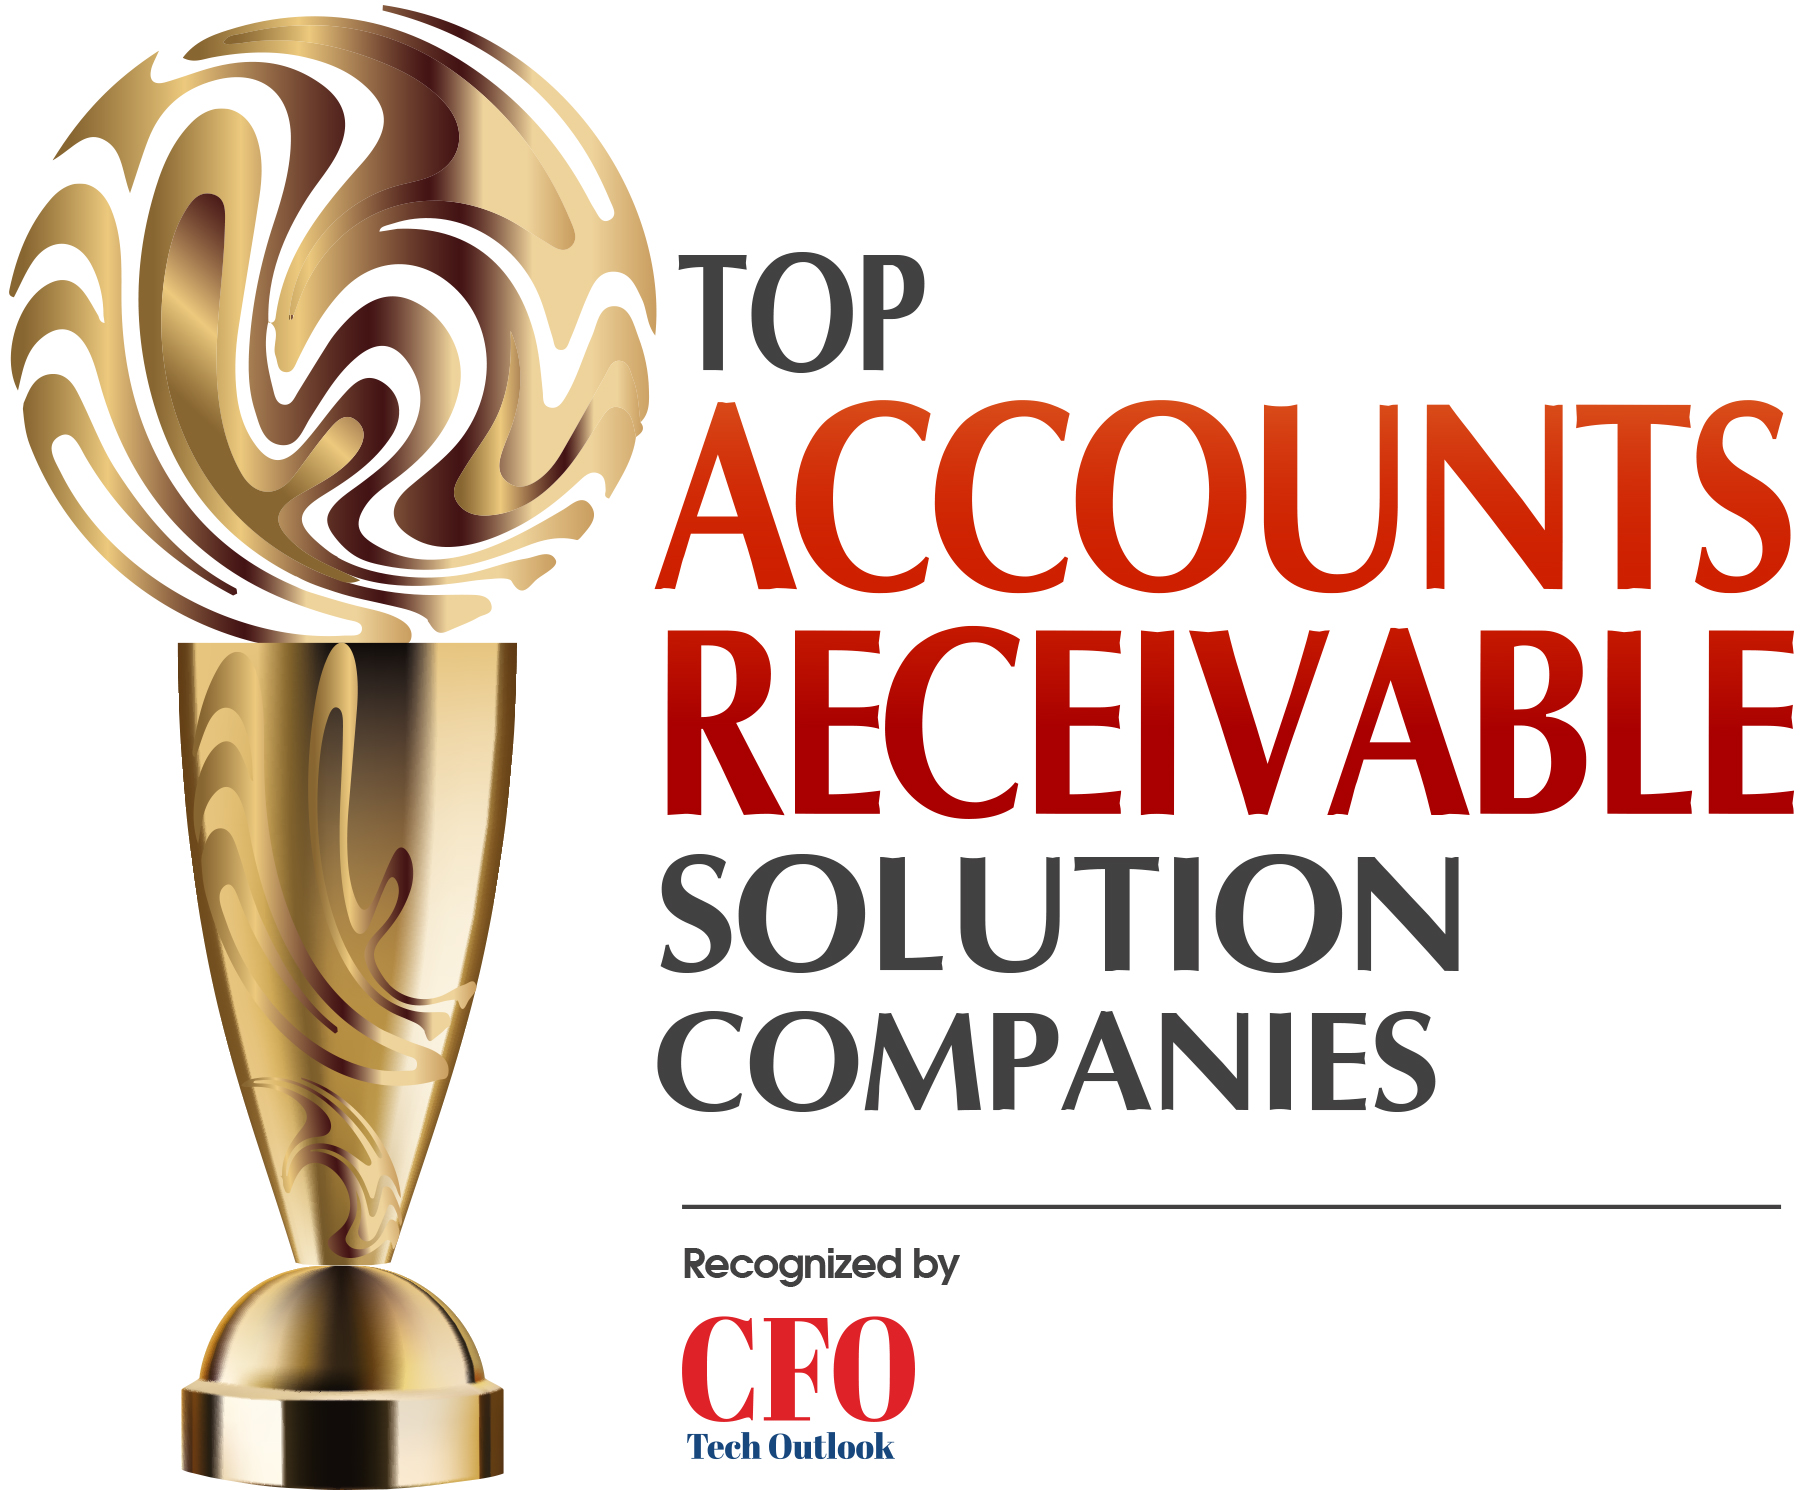 Top 10 Accounts Receivable Solution Companies - 2019